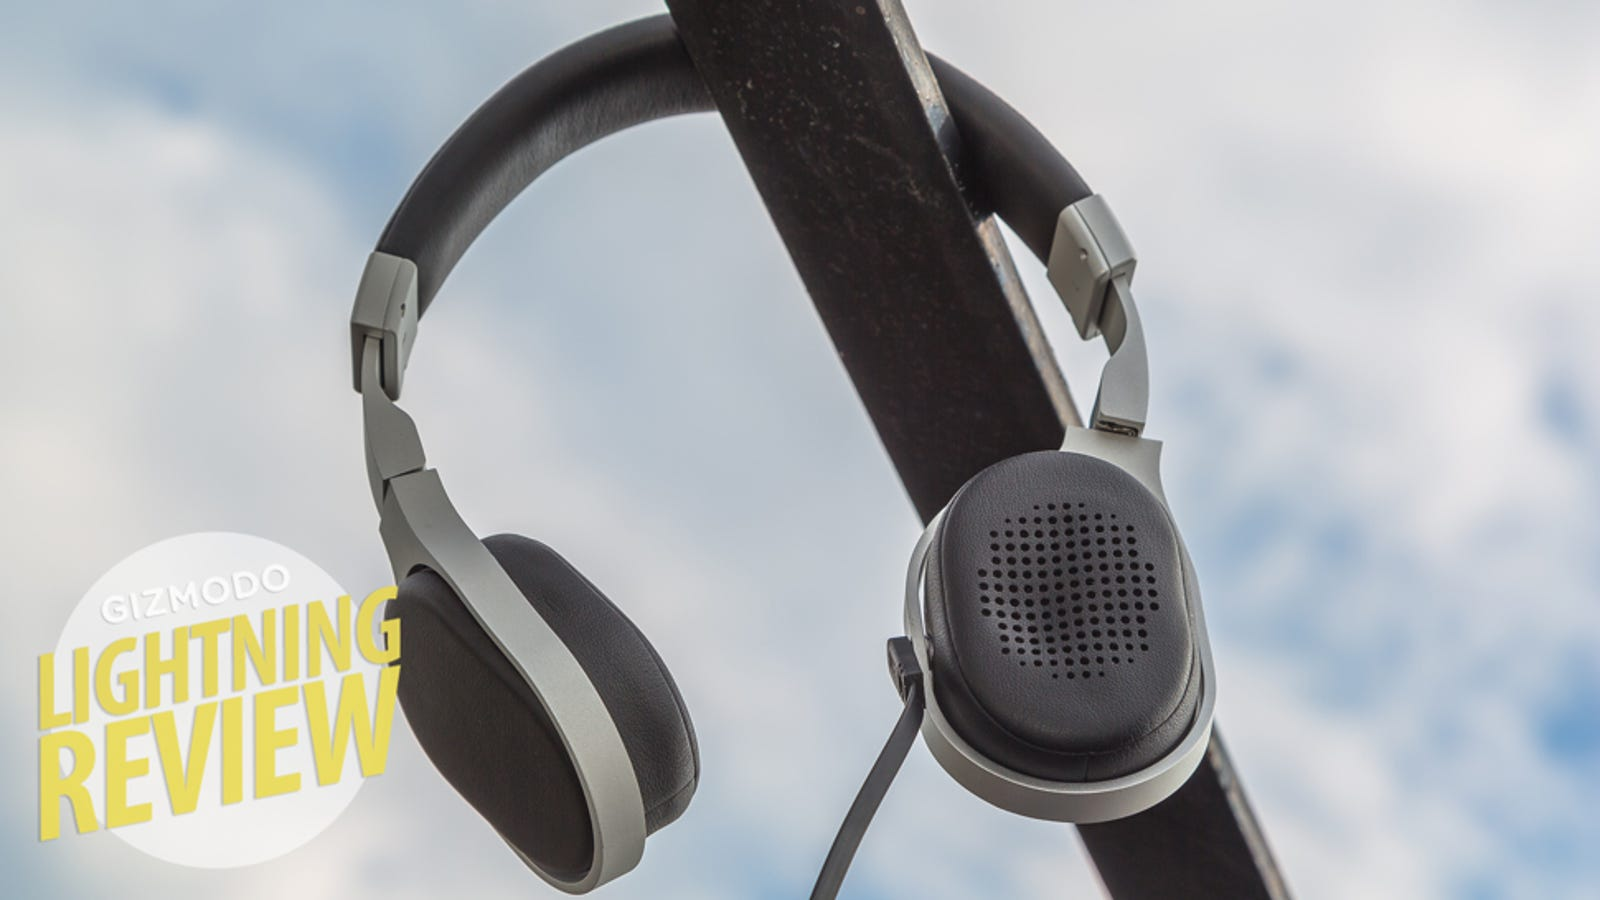 headphone cord with remote - KEF M500 Headphone Review: Perfect Balance of Sound and Comfort